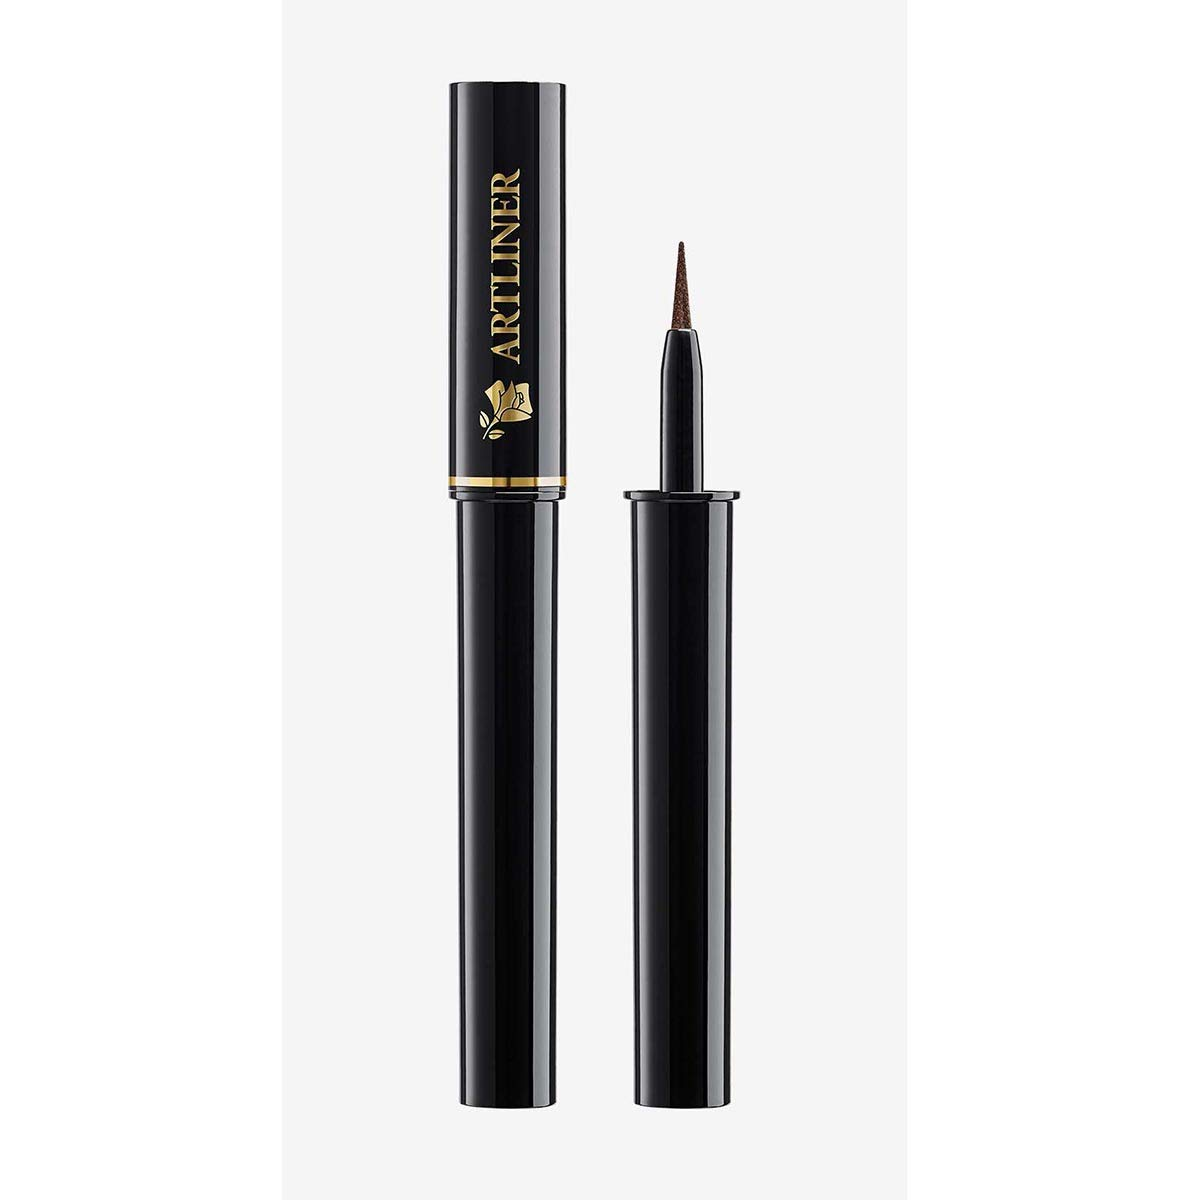 Artliner/0.04 oz. Chocolate by LANCOME (Image #1)